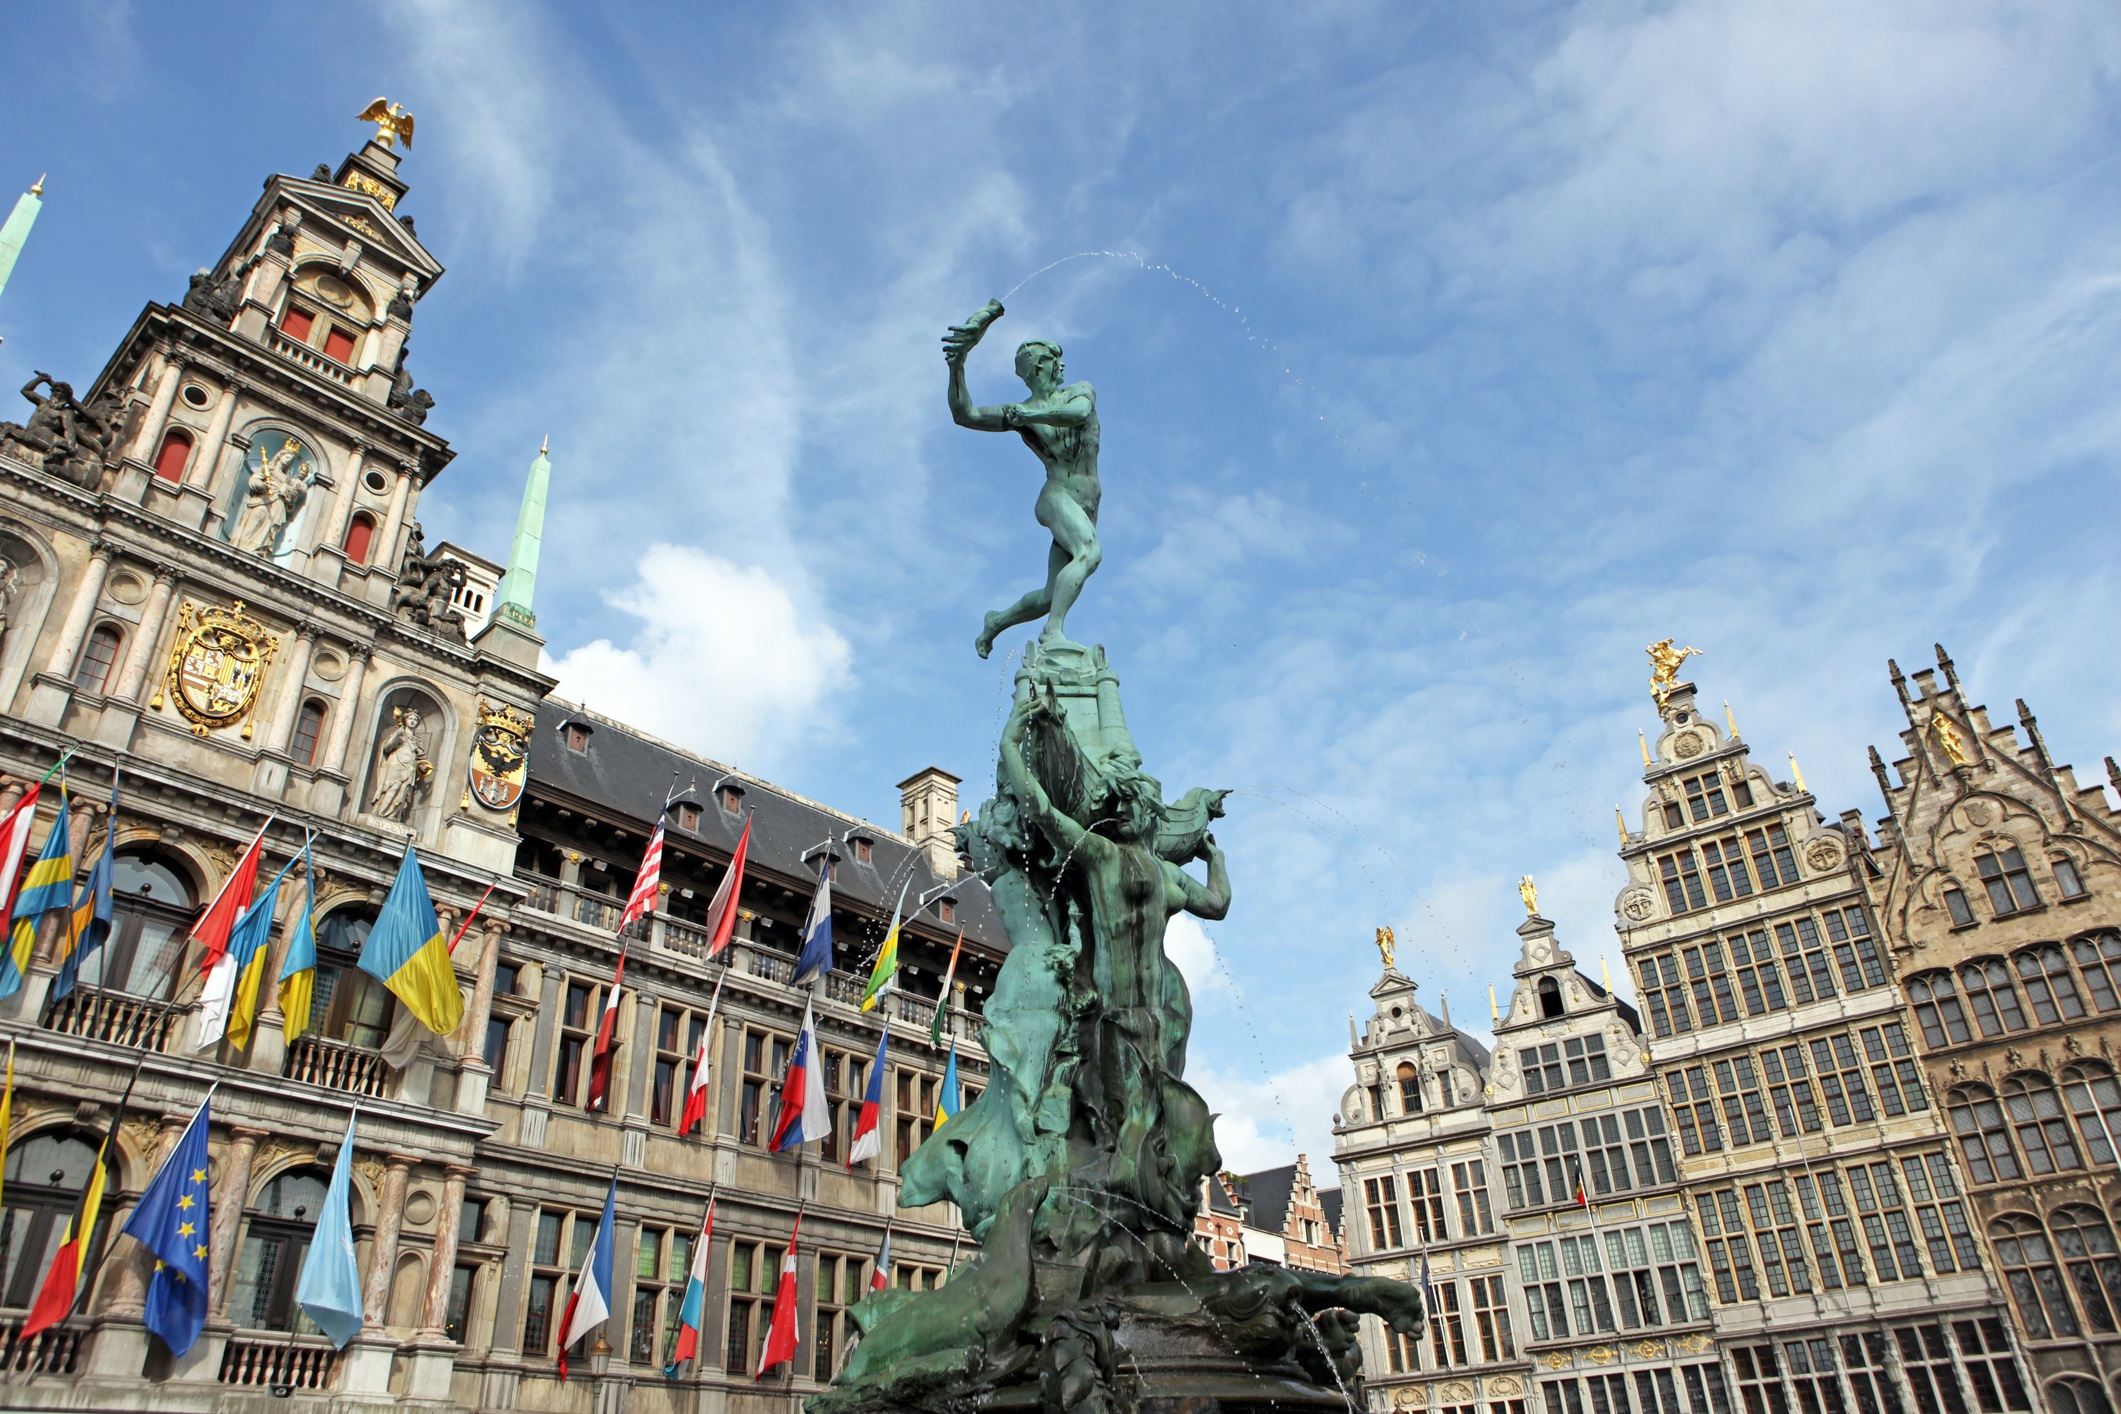 Platz in Antwerpen in Belgien